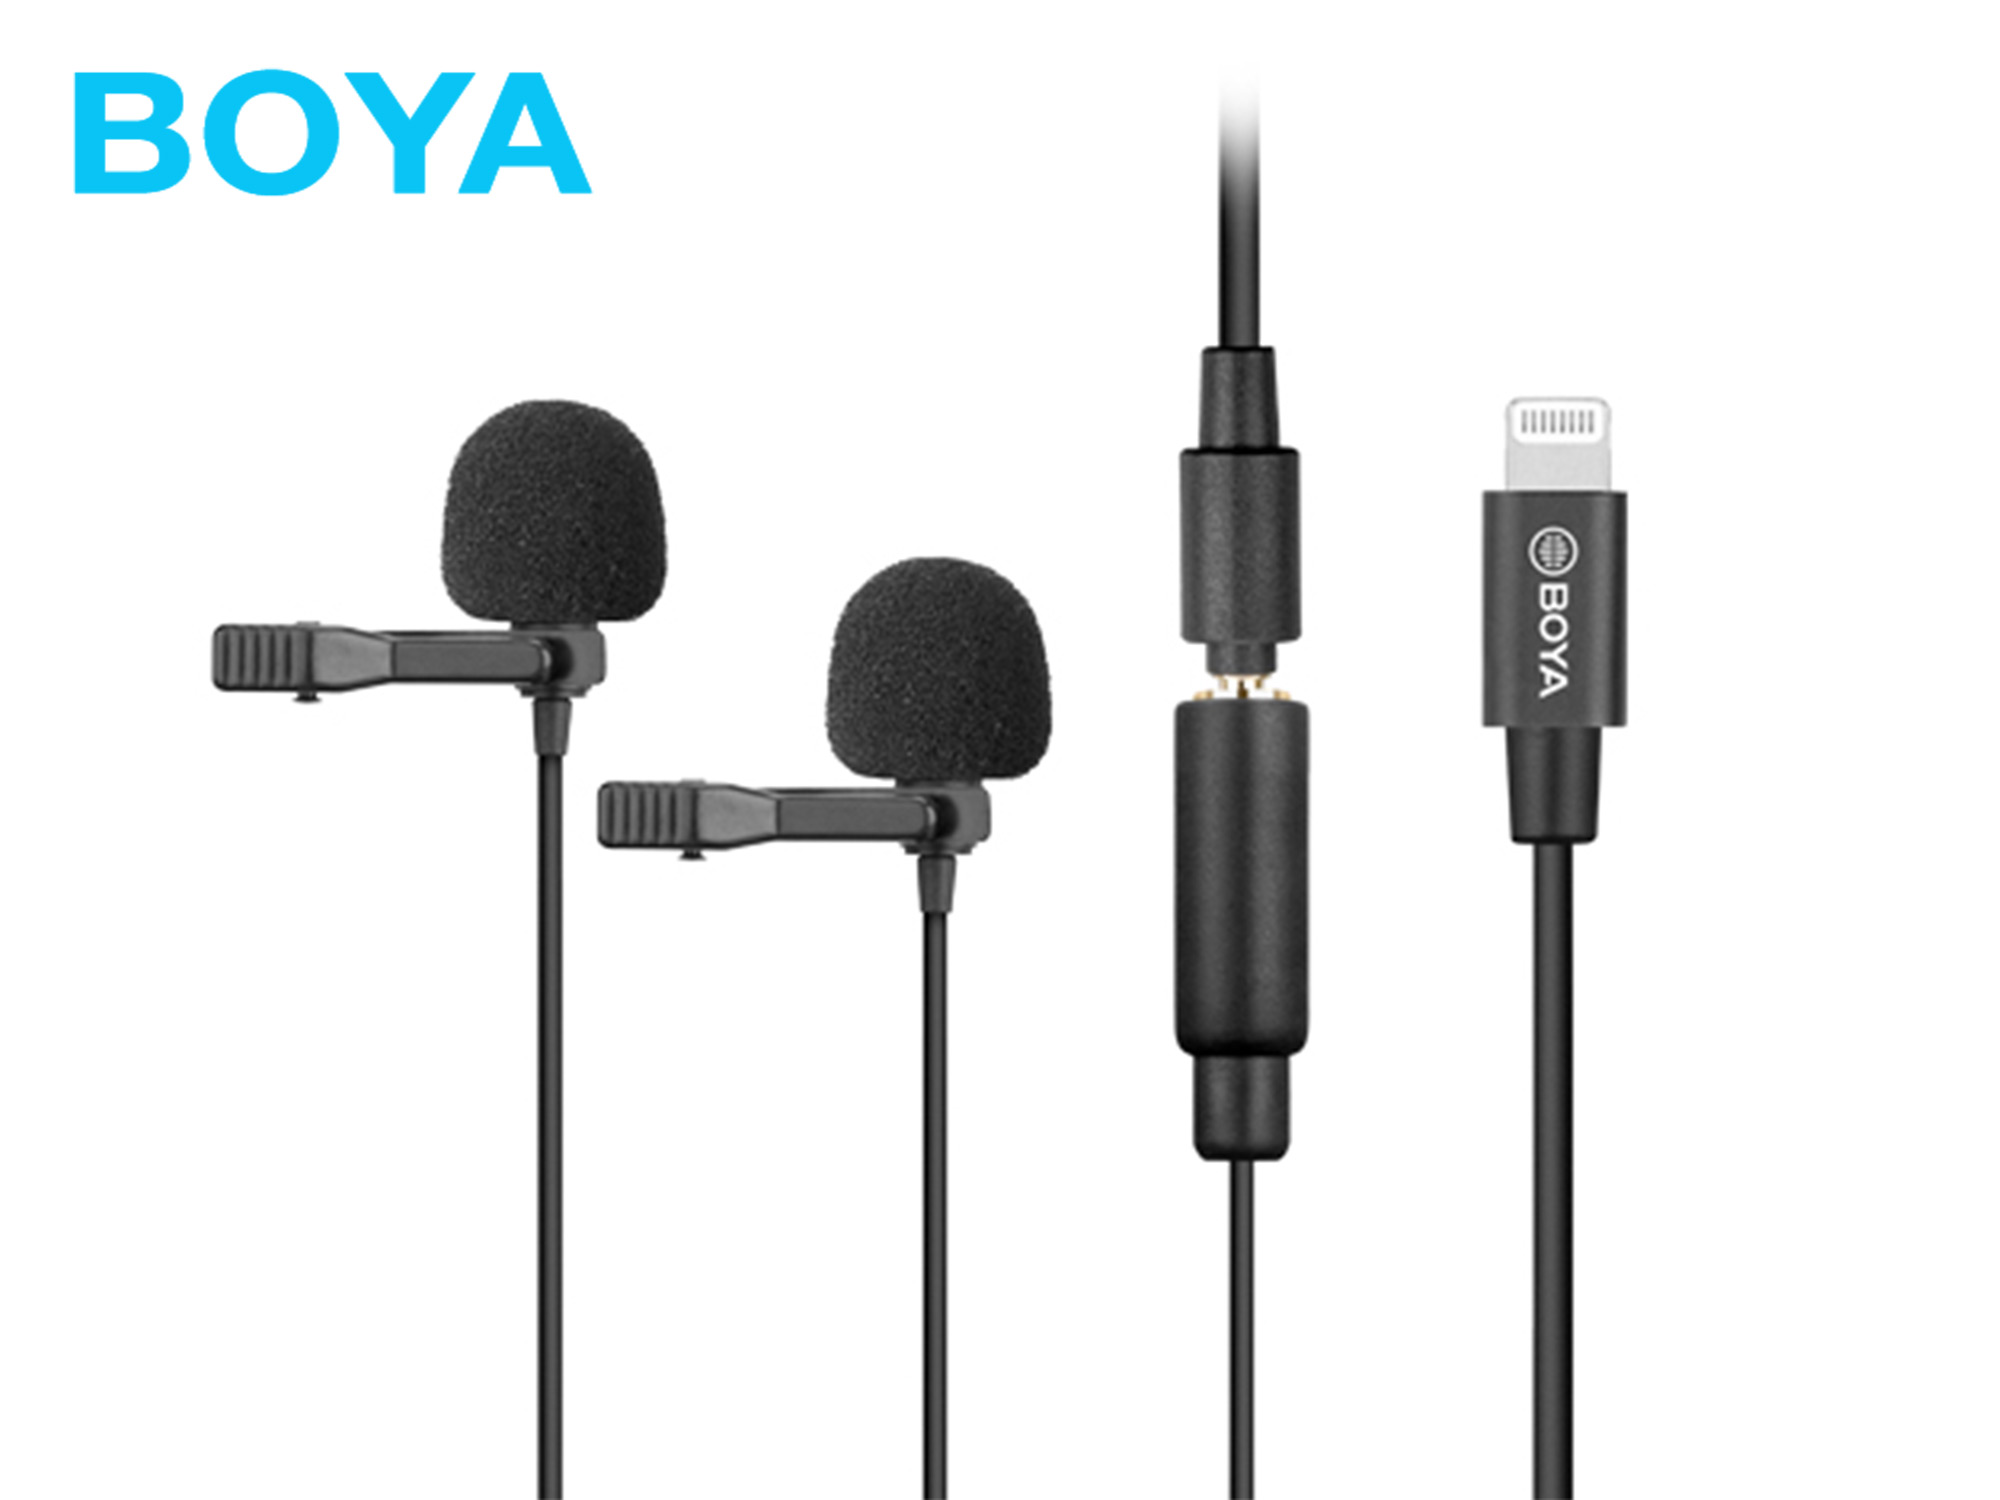 Boya BY-M2D Digital Dual Lavalier Microphones for iOS devices